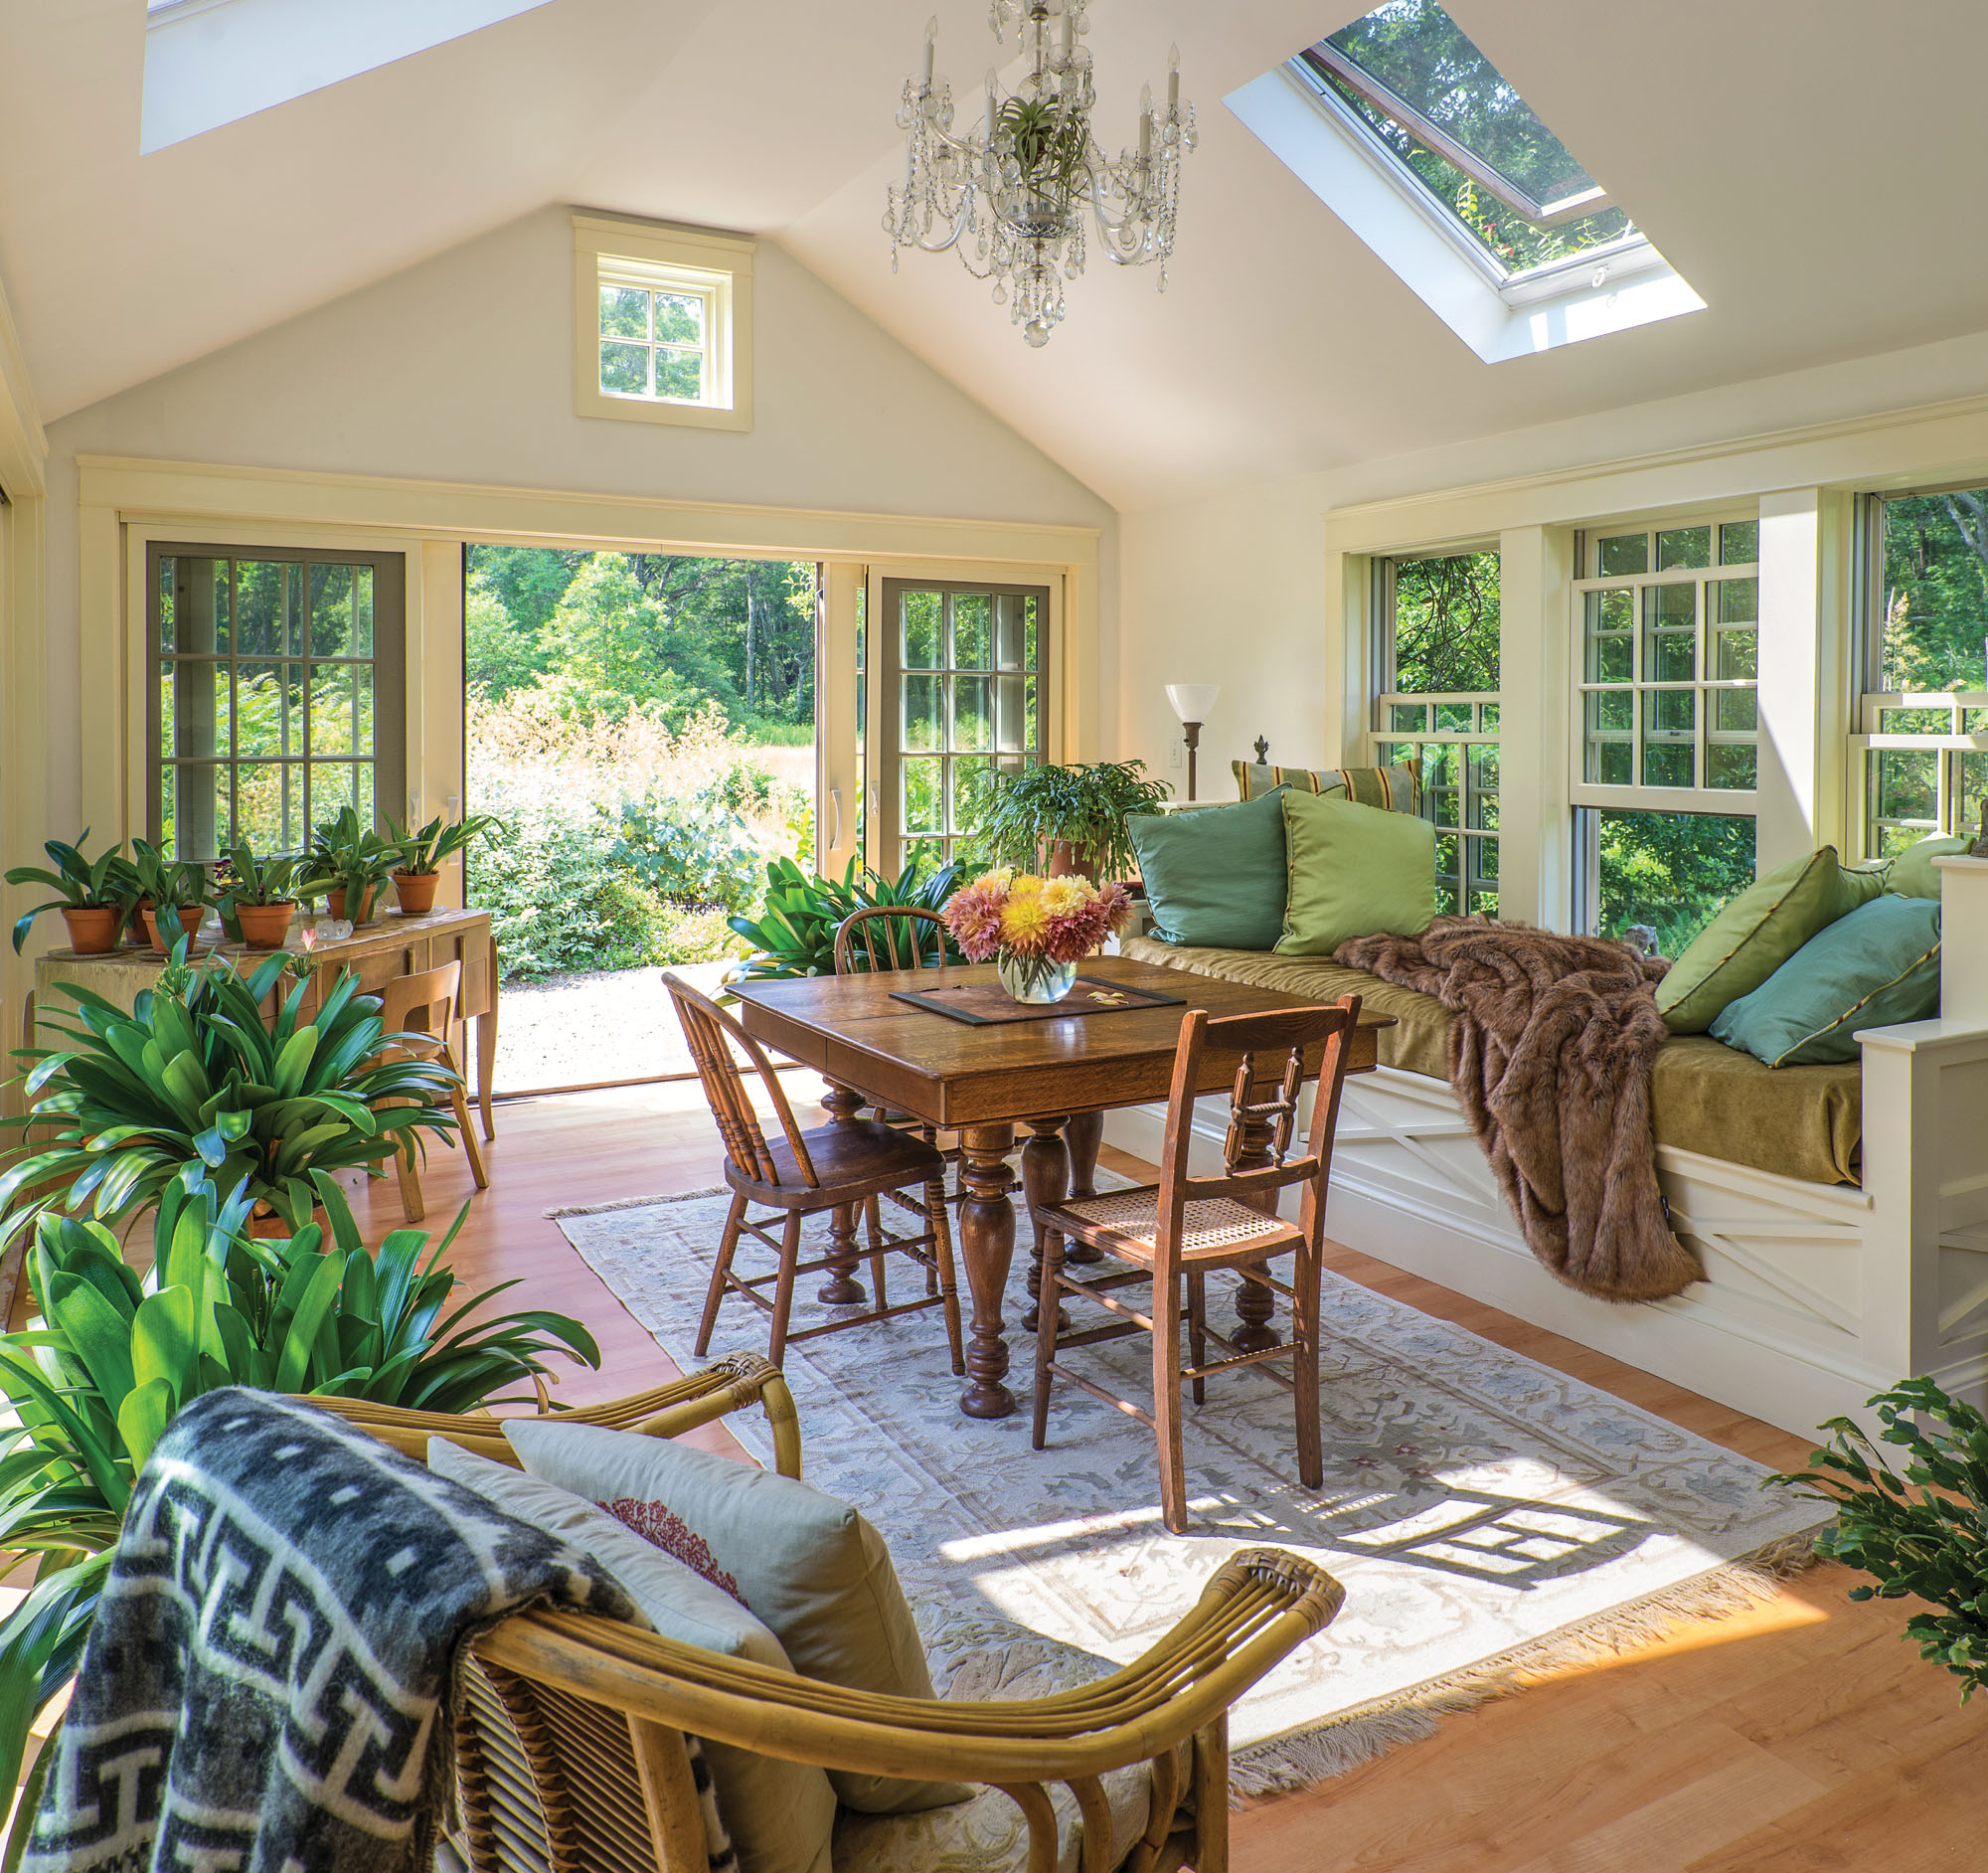 light-filled sunroom with hardy plants